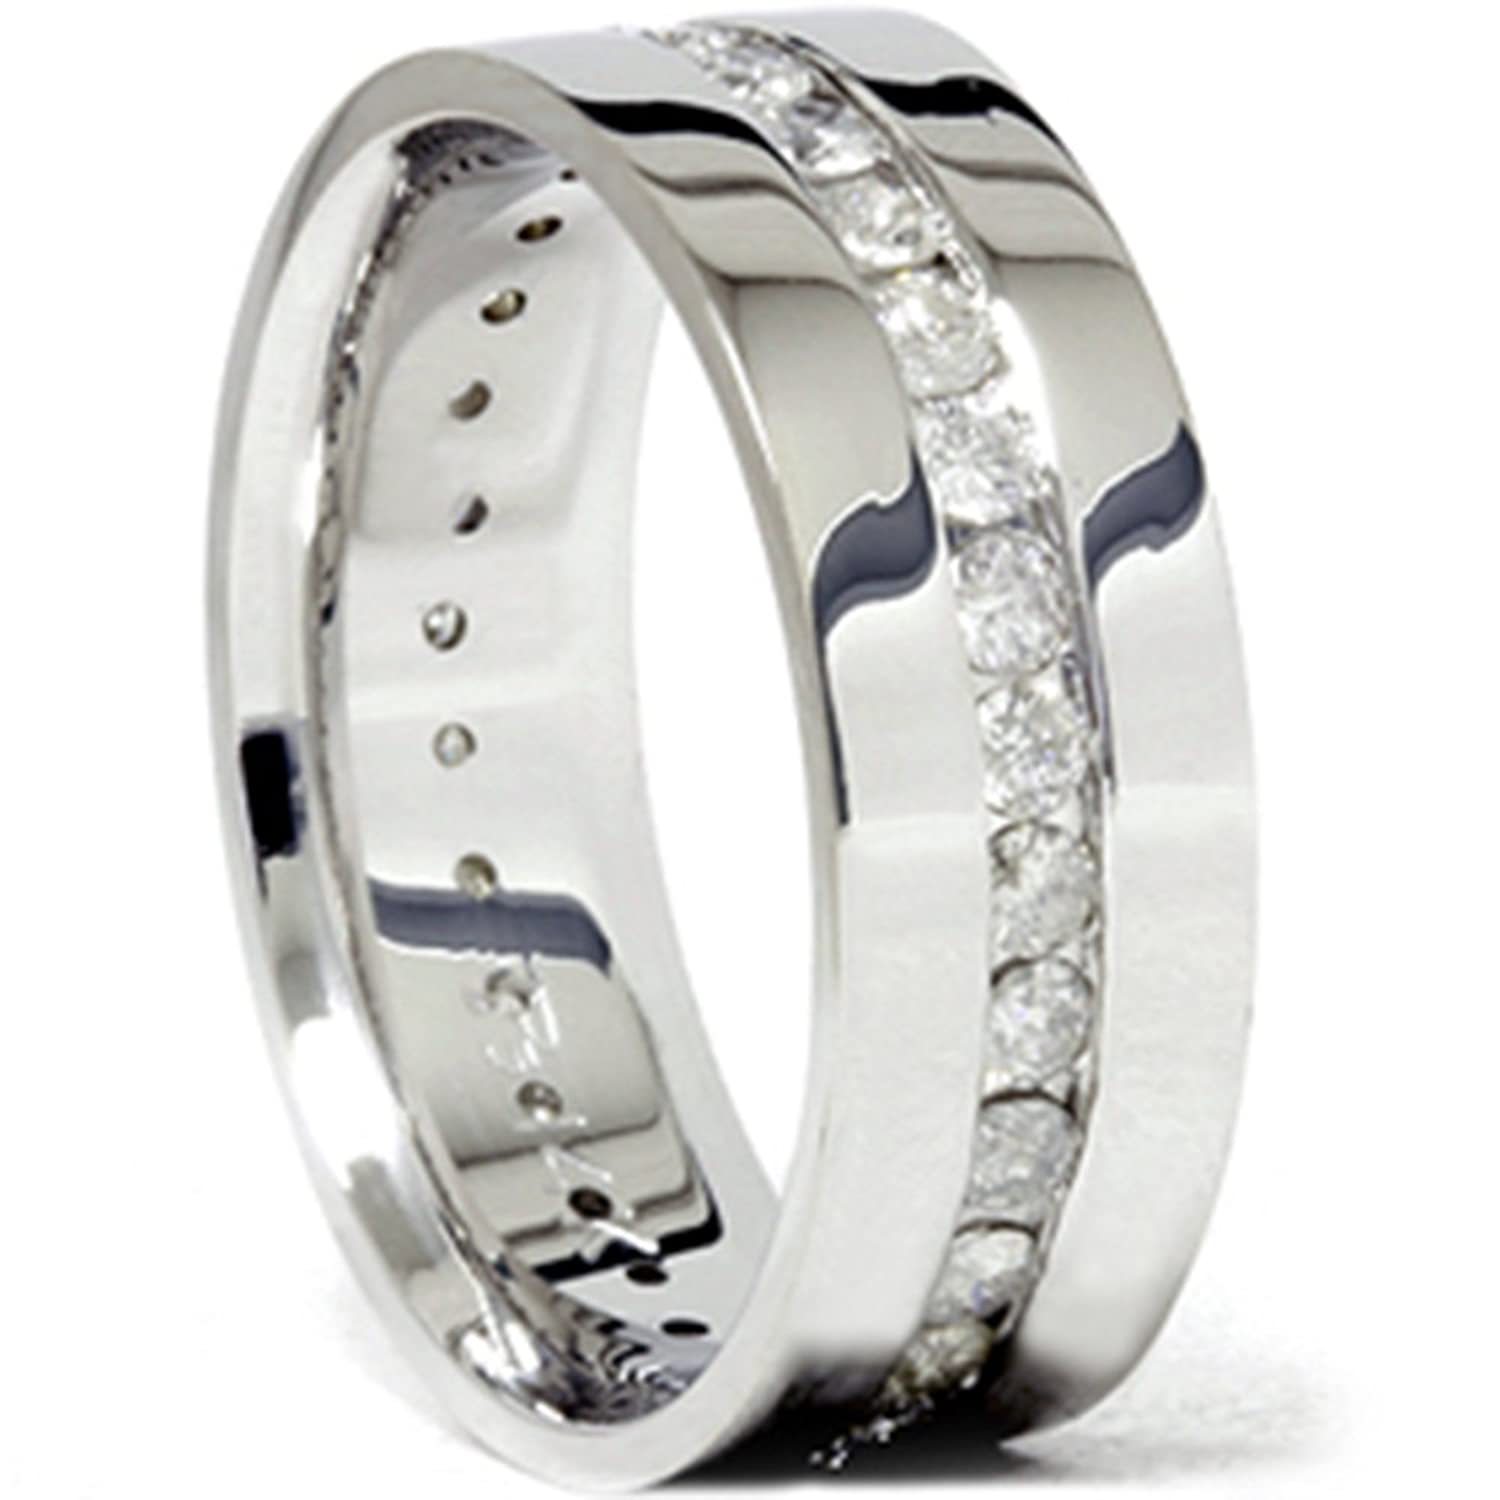 cb crm us co shop jewellery jewelry and ring bands tiffany diamond rings wedding